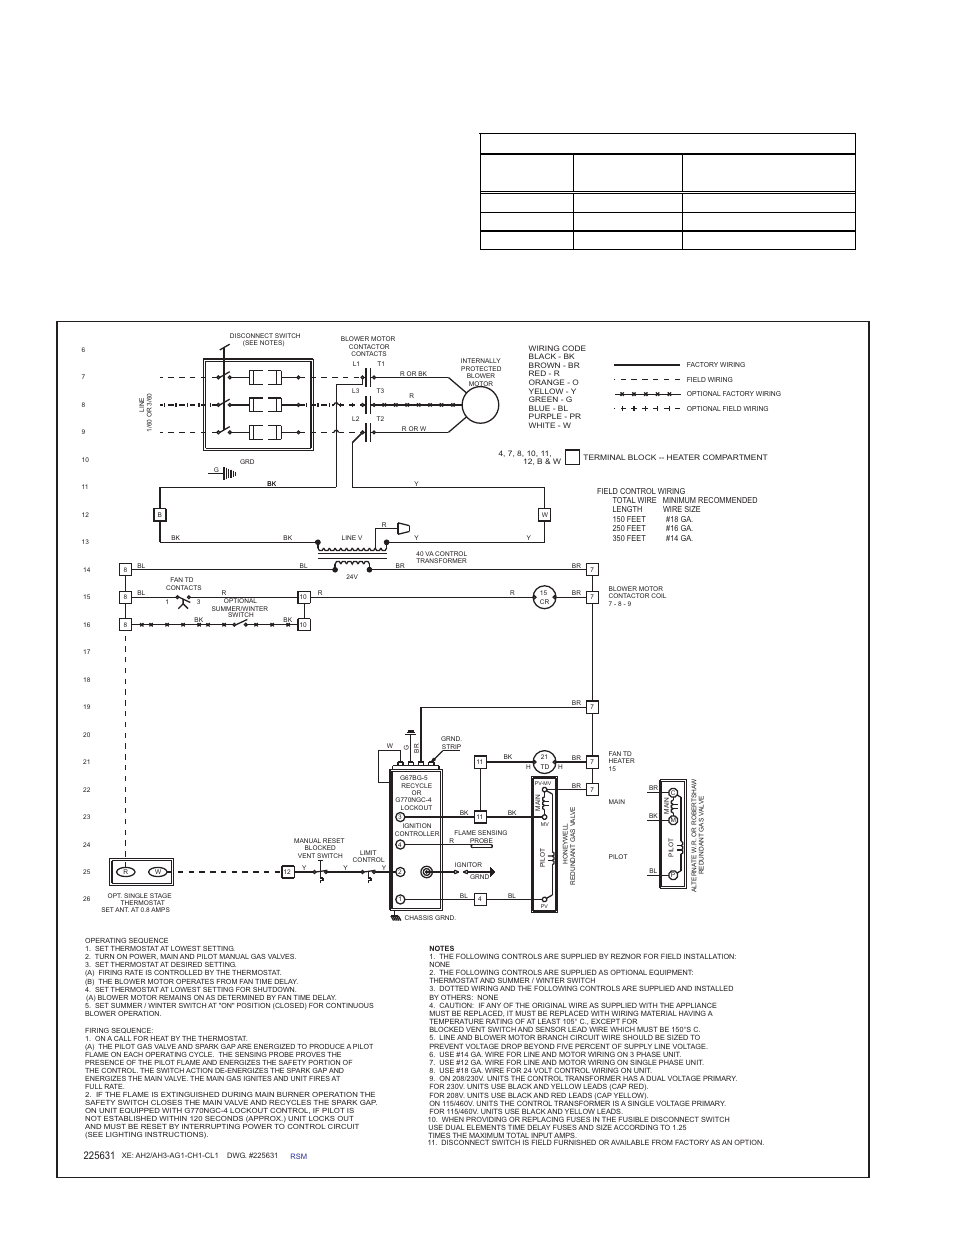 reznor xe unit installation manual page19 diagrams long wiring tractor 470dtc deutz wiring diagrams reznor model f100 wiring diagram at alyssarenee.co